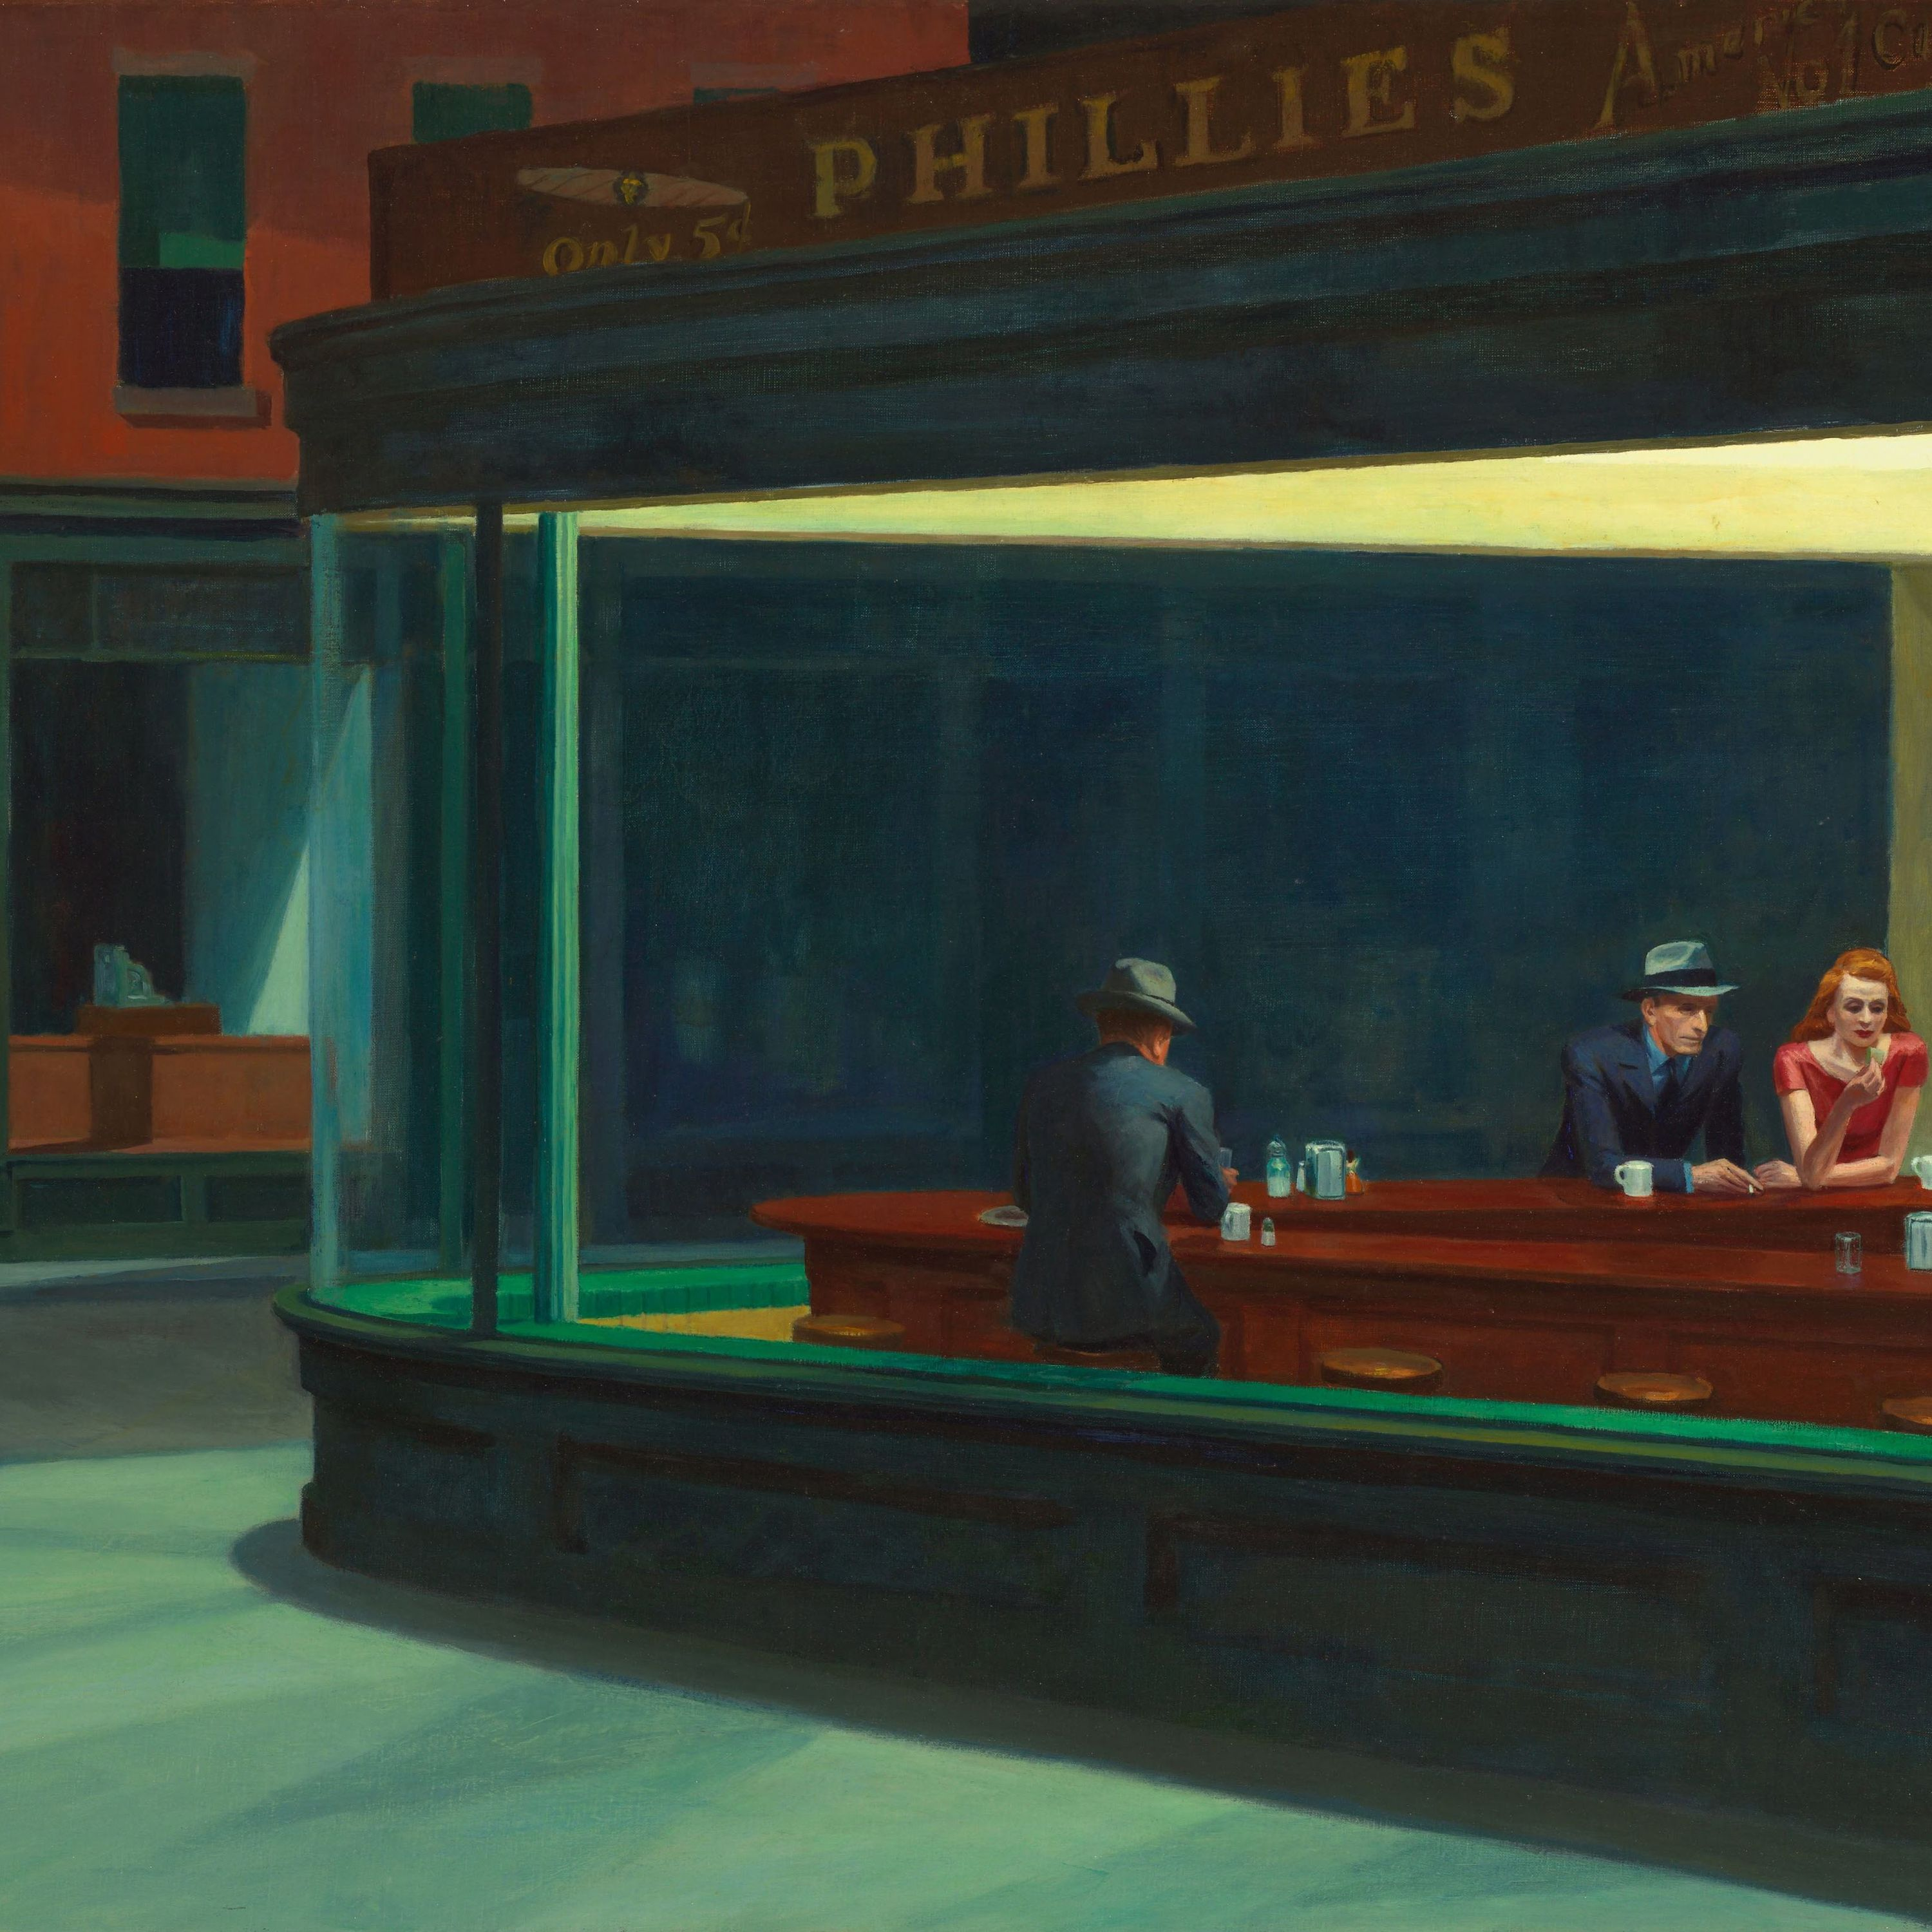 Edward Hopper painting of a man in a diner late at night.